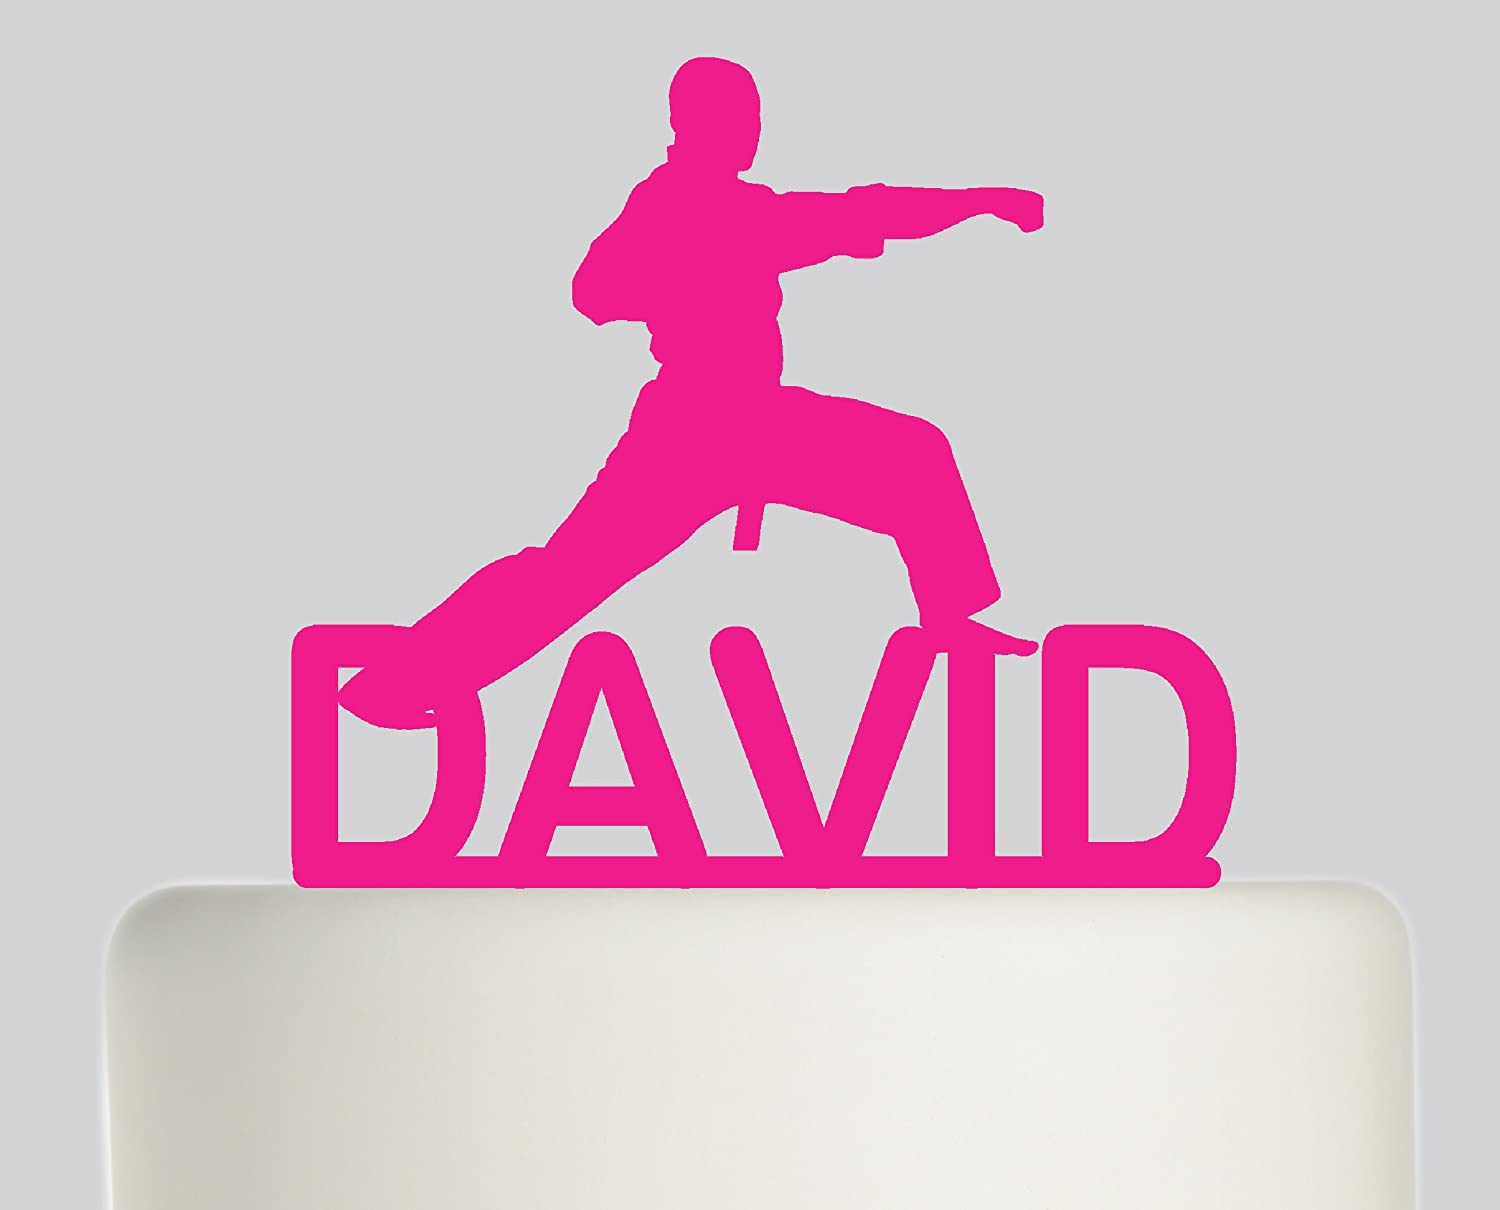 Large Birthday Cake Topper Martial Arts Judo Karate Taekwondo Ju Jitsu Personalised With YOUR NAME Ideal Decoration Party